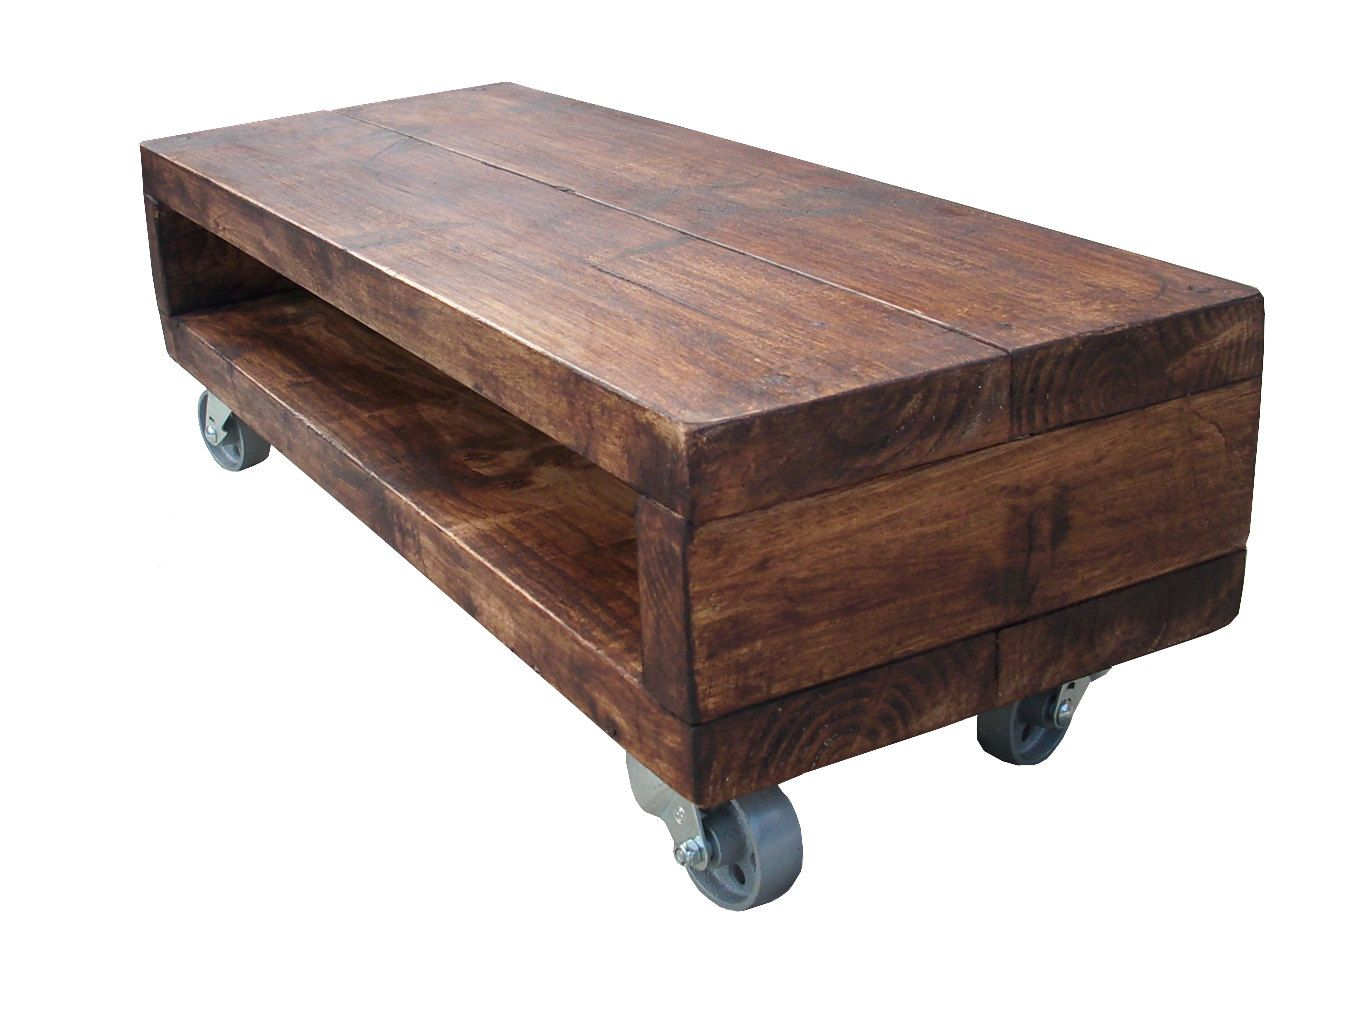 Industrial style rustic coffee table / Tv stand cherry wood finish with  cast industrial swivel wheels